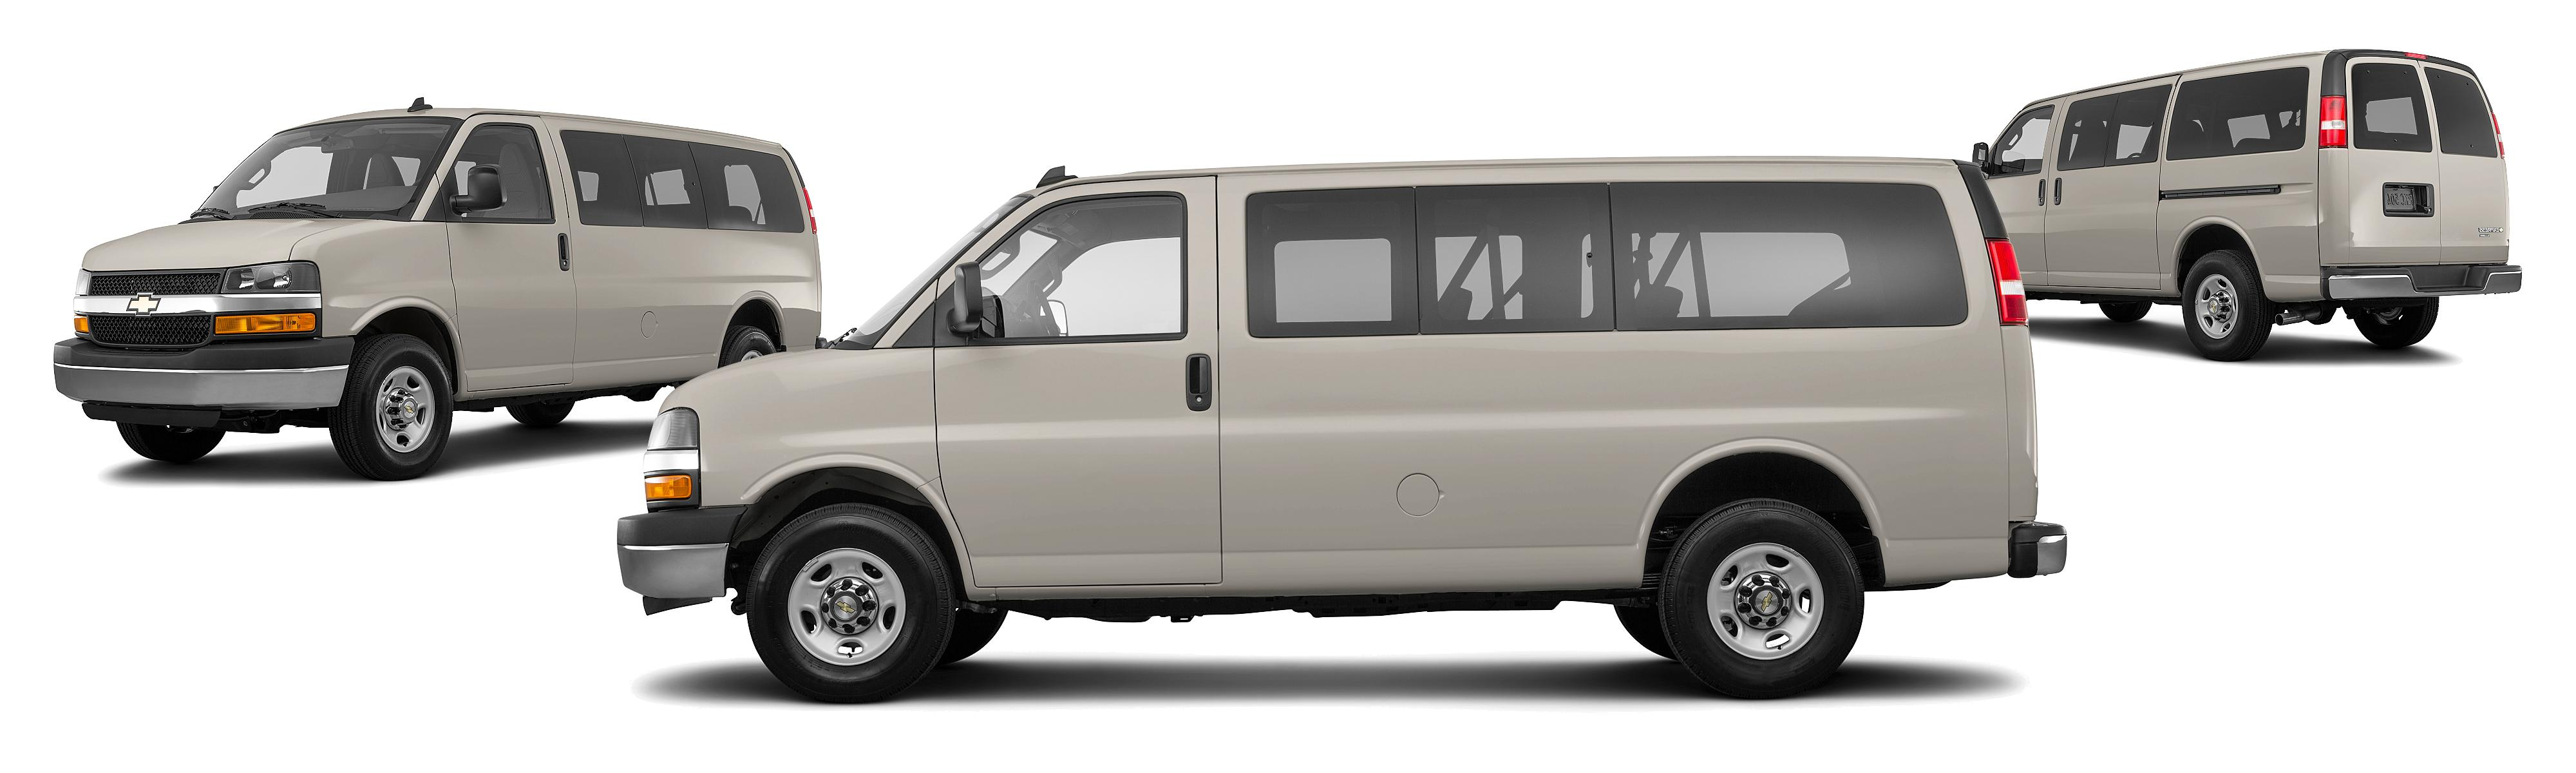 2017 chevy express passanger van pictures to pin on pinterest pinsdaddy. Black Bedroom Furniture Sets. Home Design Ideas